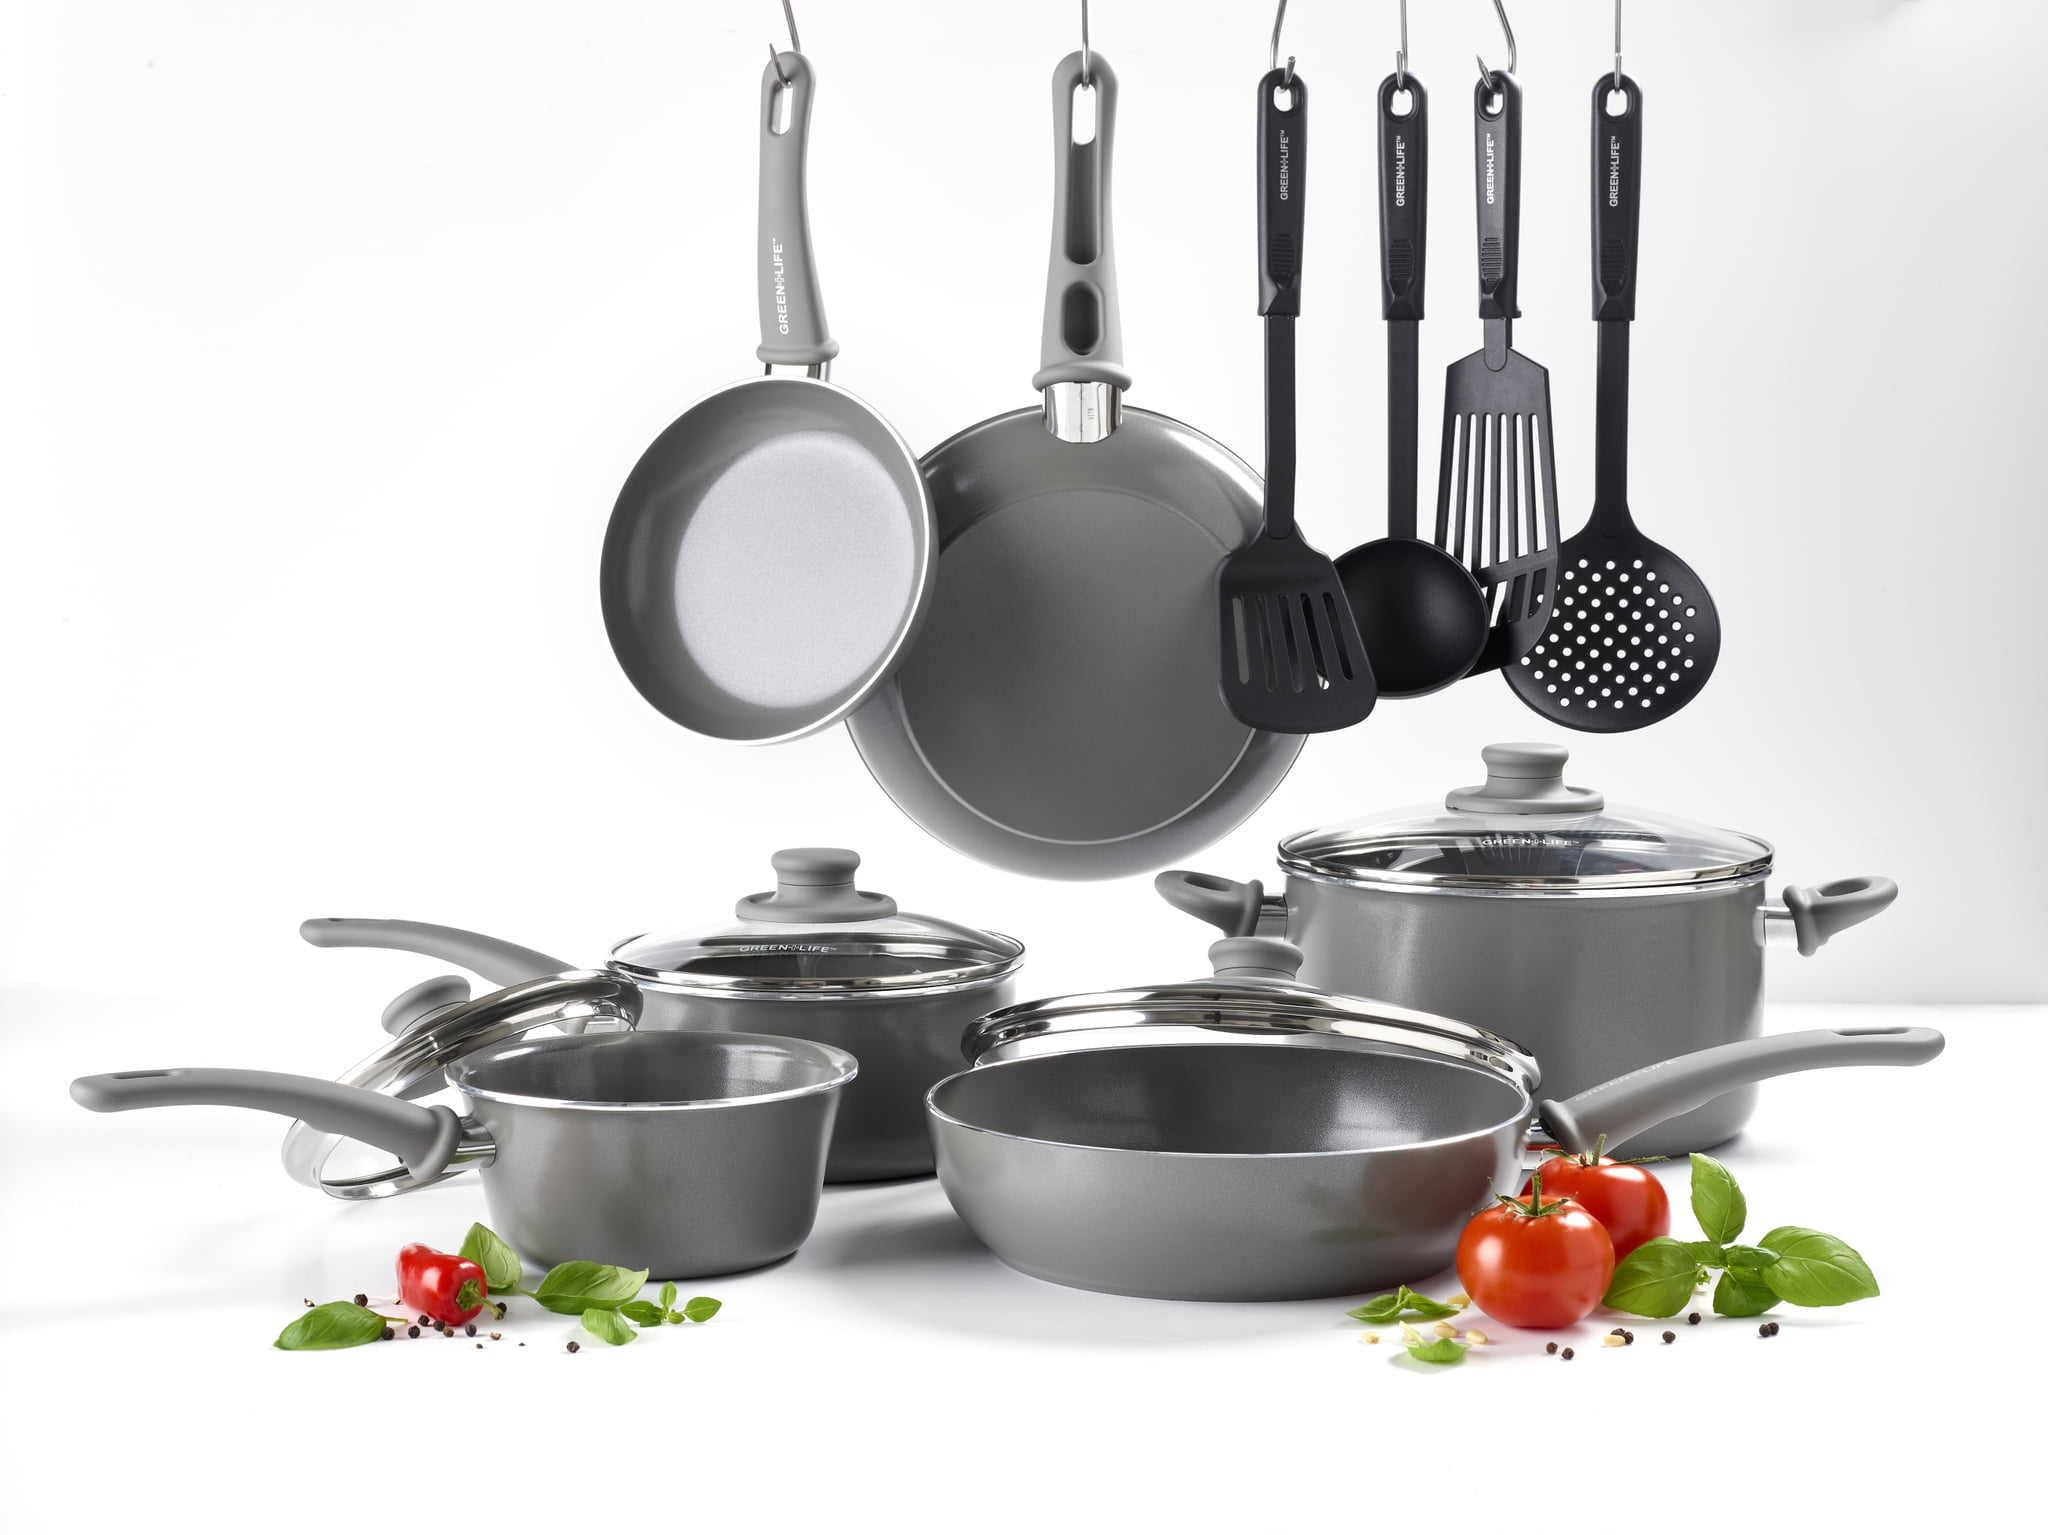 Greenlife Ceramic Non-stick Cookware 14 Piece Cookware Set